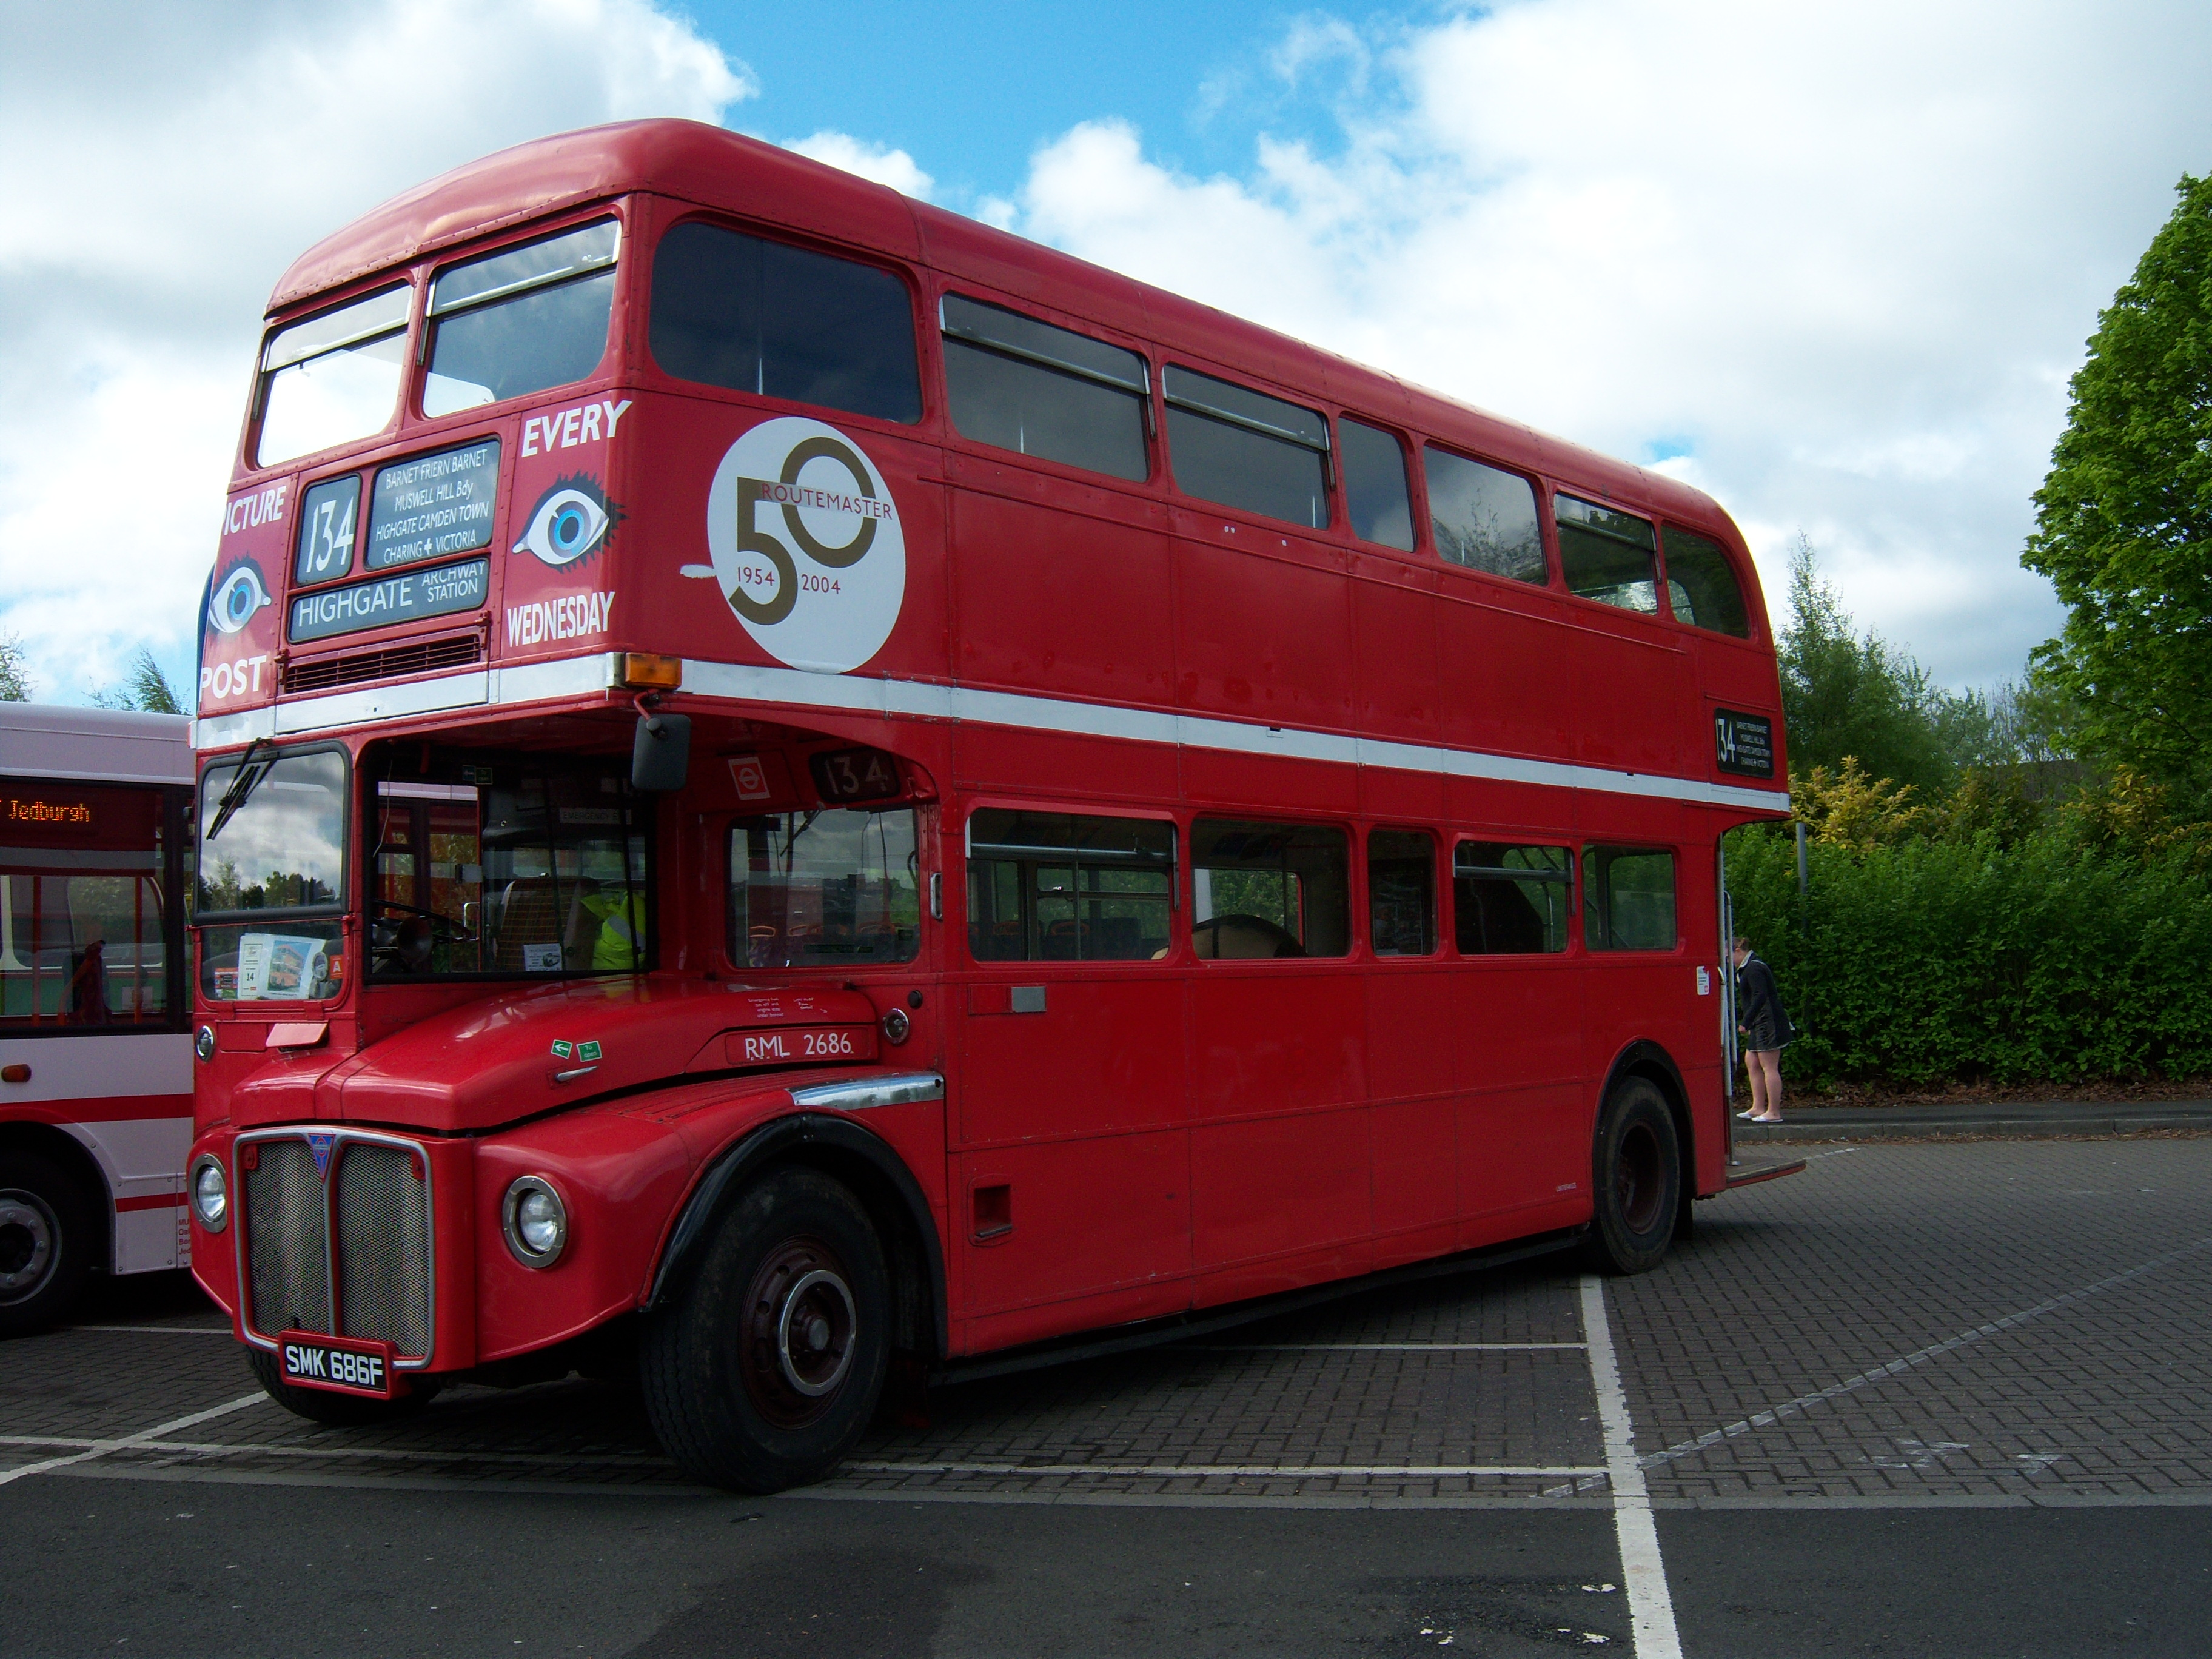 File:Routemaster bus RML 2686 Routemaster 50 livery SMK 686F Metrocentre  rally 2009 pic 7